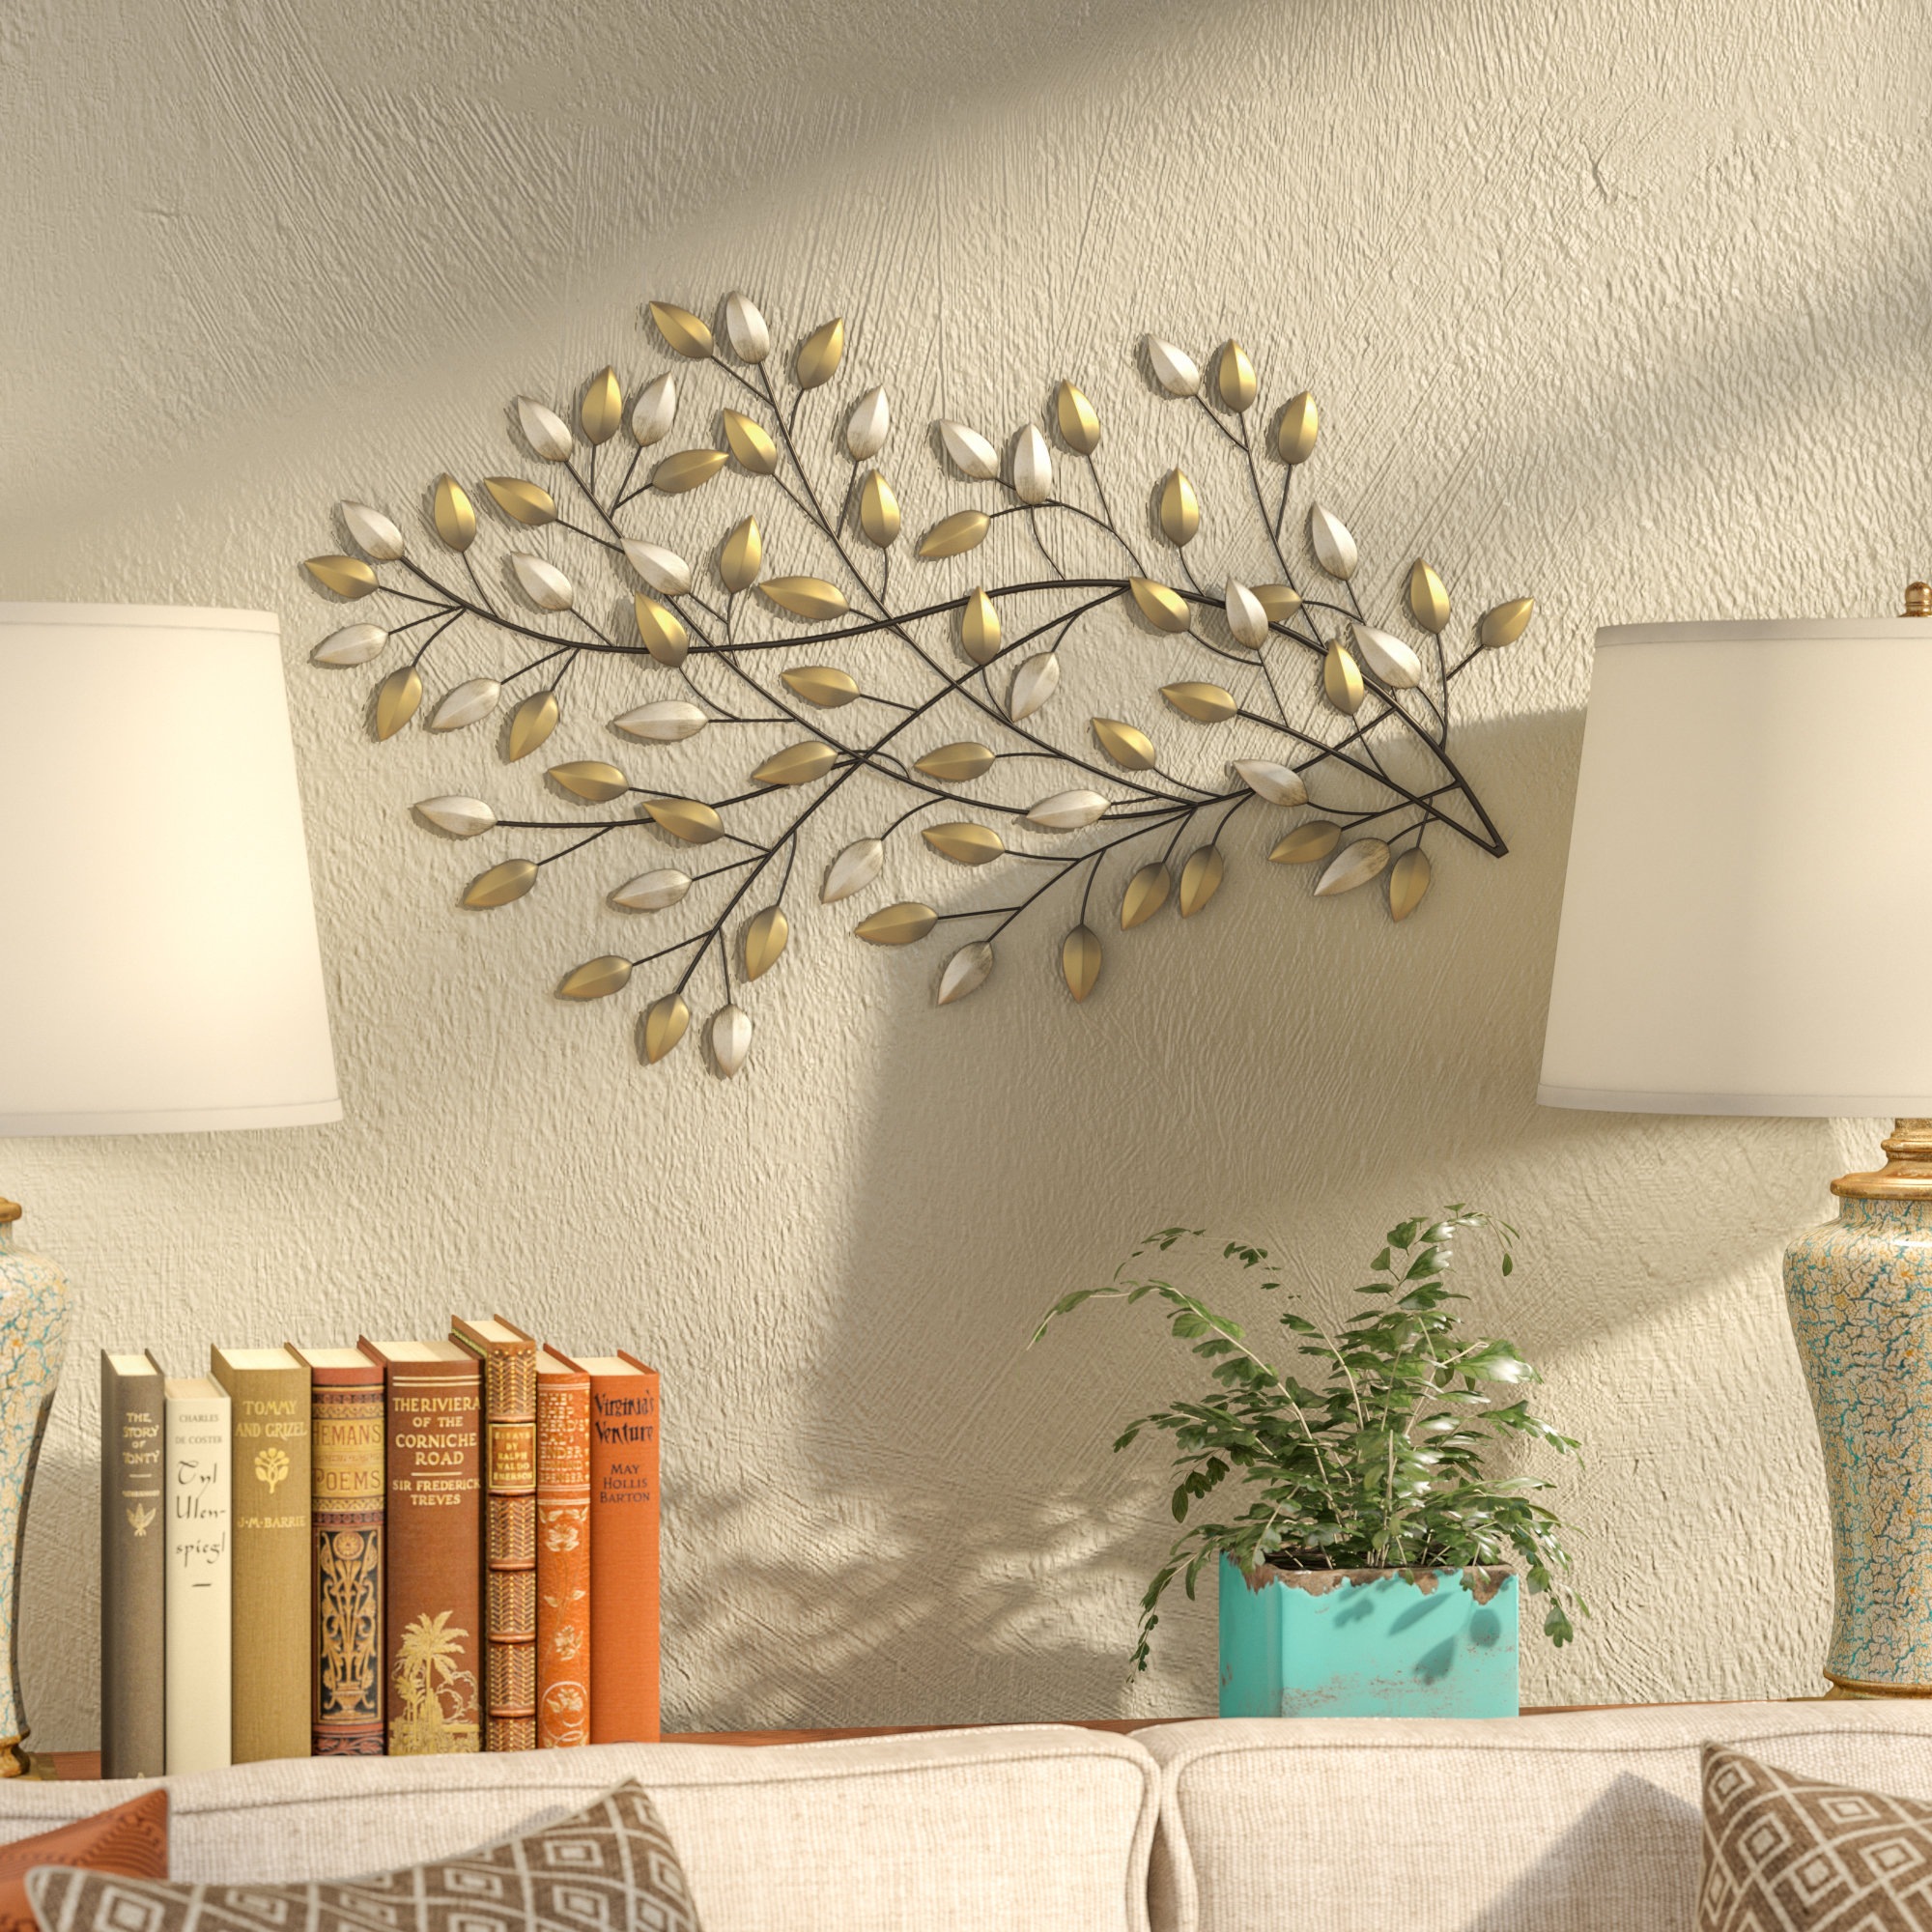 Fleur De Lis Living Blowing Leaves Wall Décor & Reviews With Desford Leaf Wall Decor (View 11 of 30)